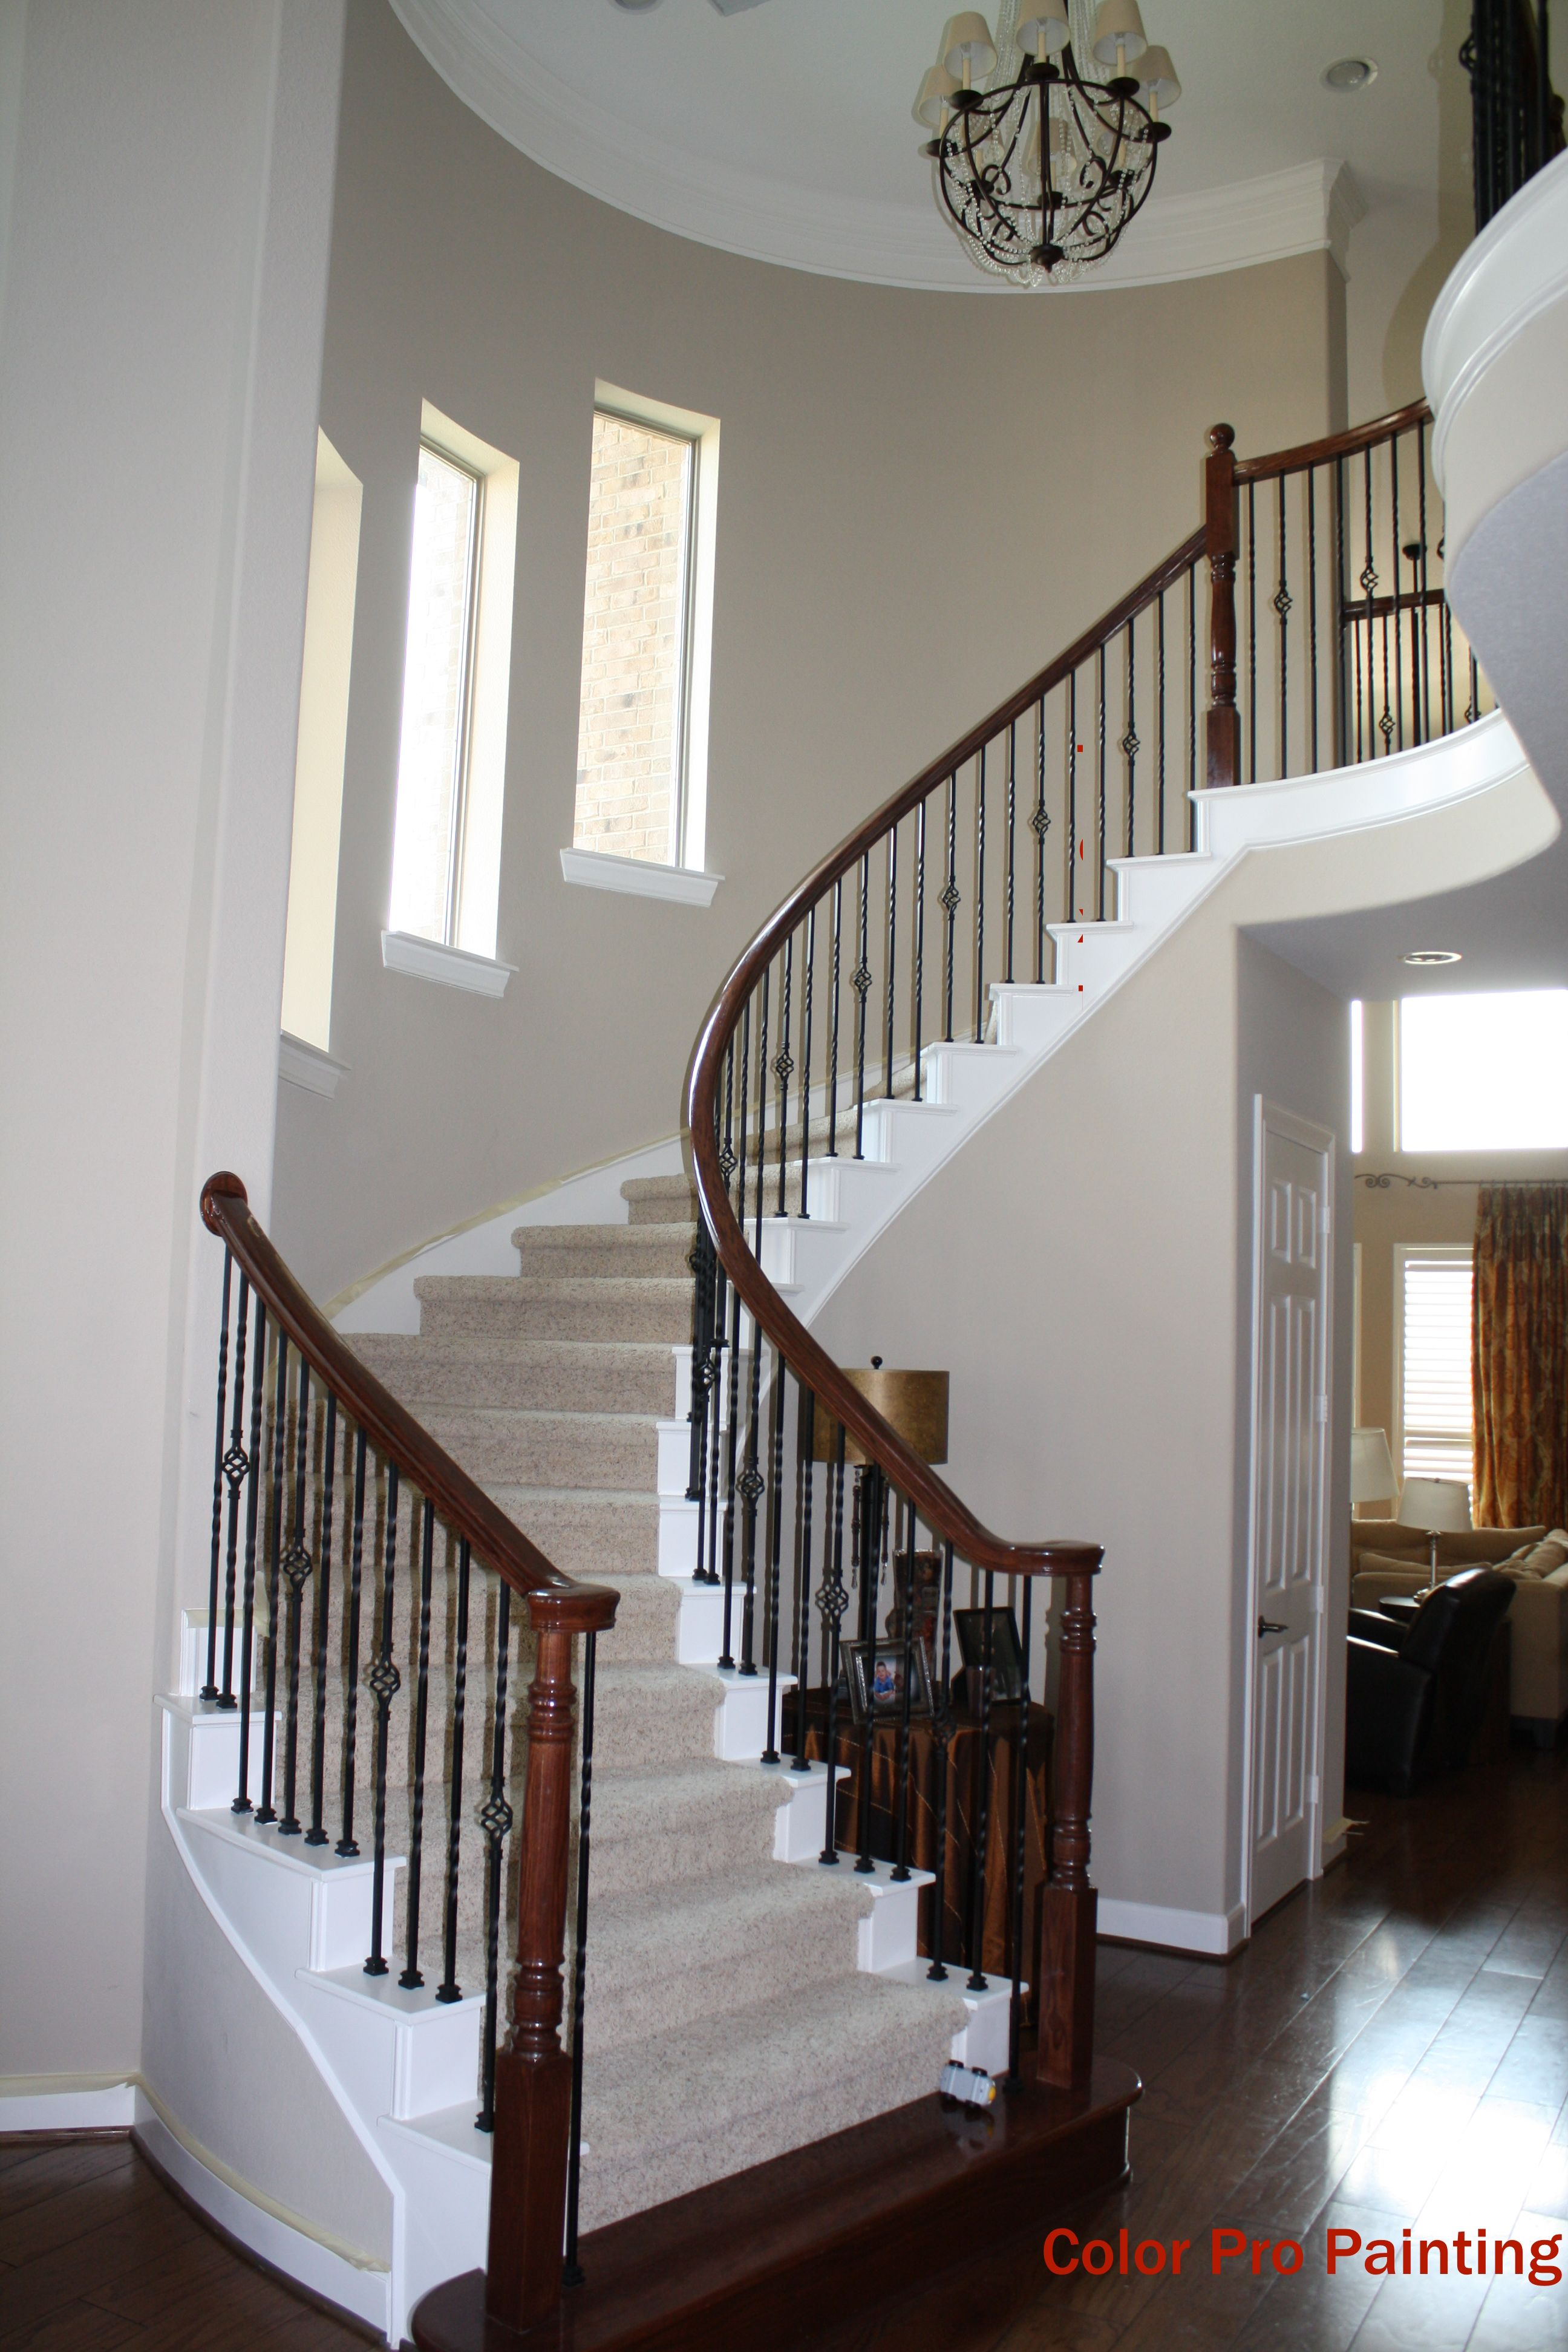 75 Most Popular Staircase Design Ideas For 2019: Interior Design & Decorating